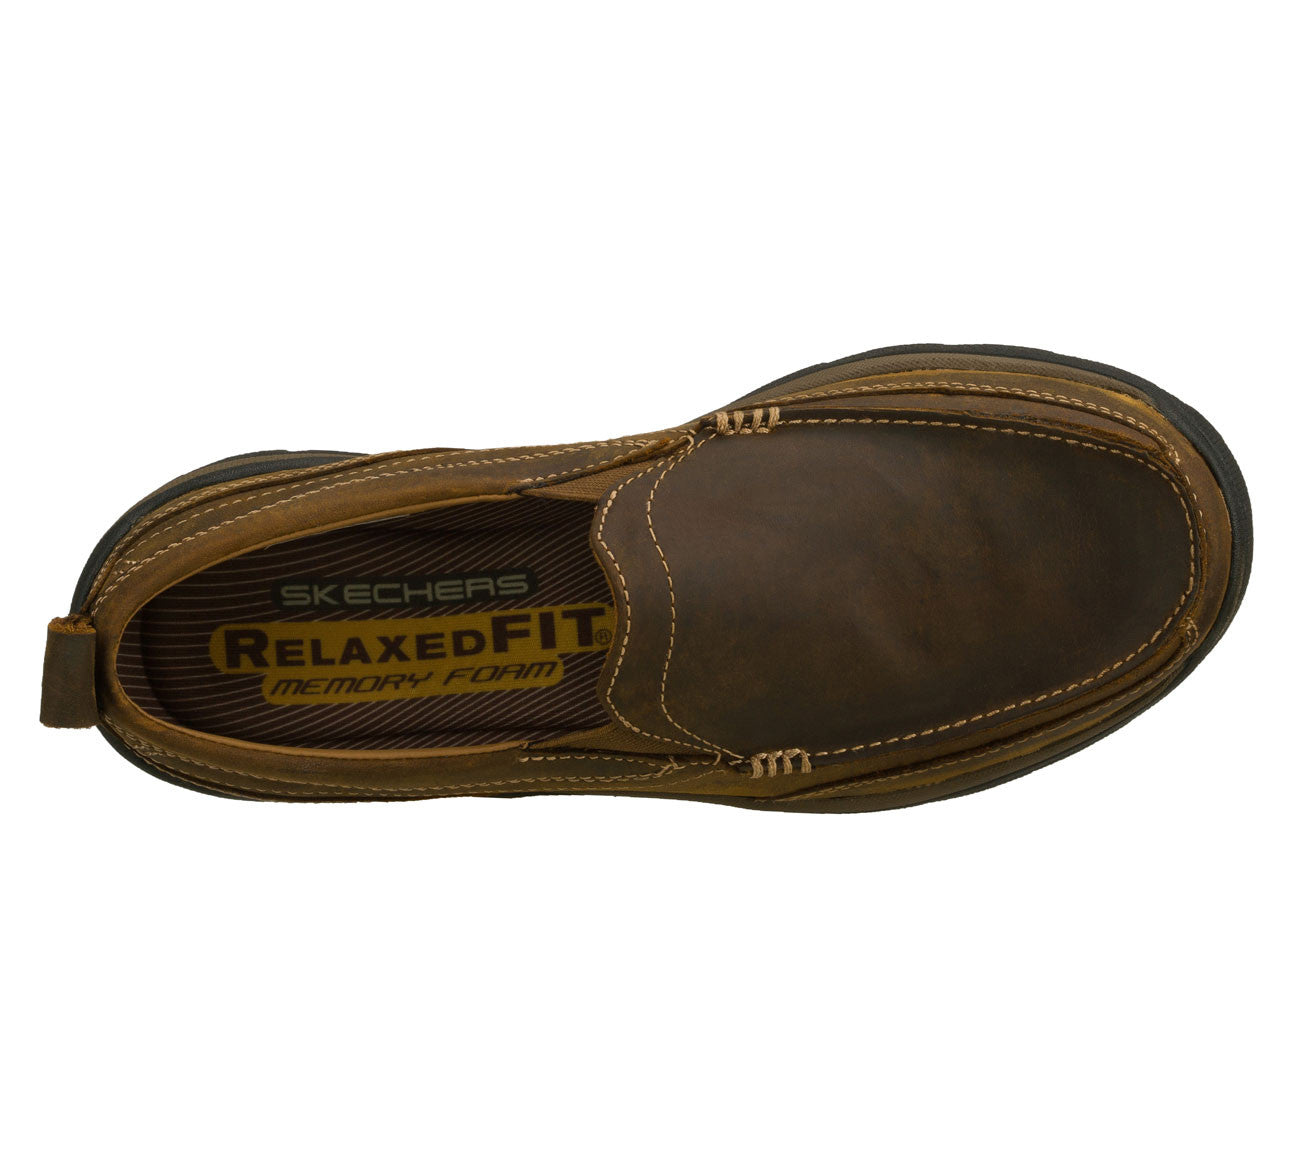 6399bfc8e221b7 Skechers Mens Relaxed Fit: Superior - Gains Brown – Army Navy Now